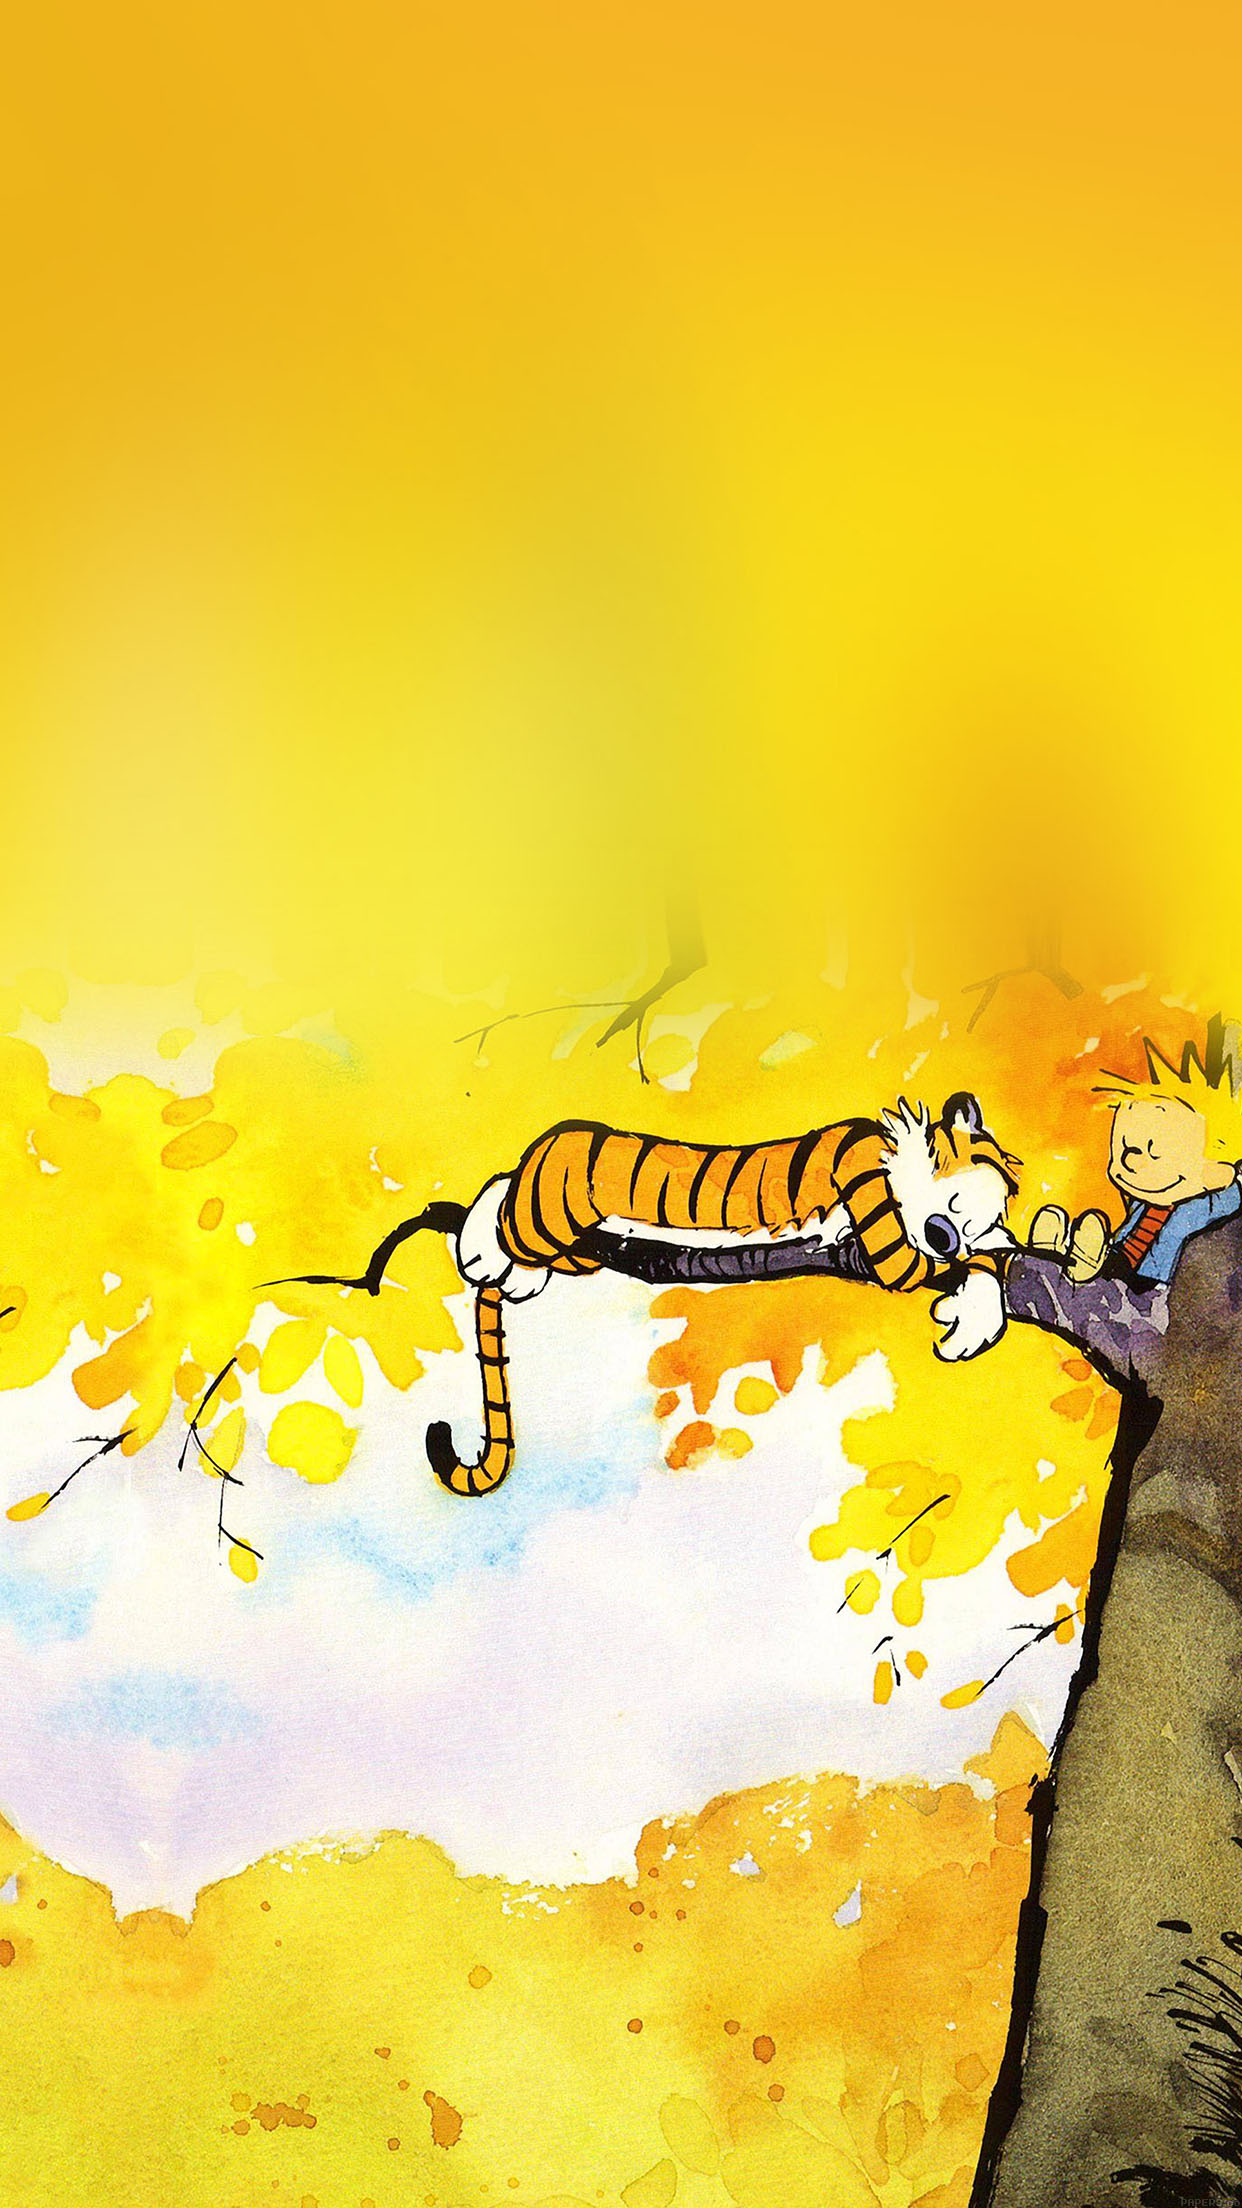 iPhonePapers - ab20-wallpaper-calvin-and-hobbes-nap-illust